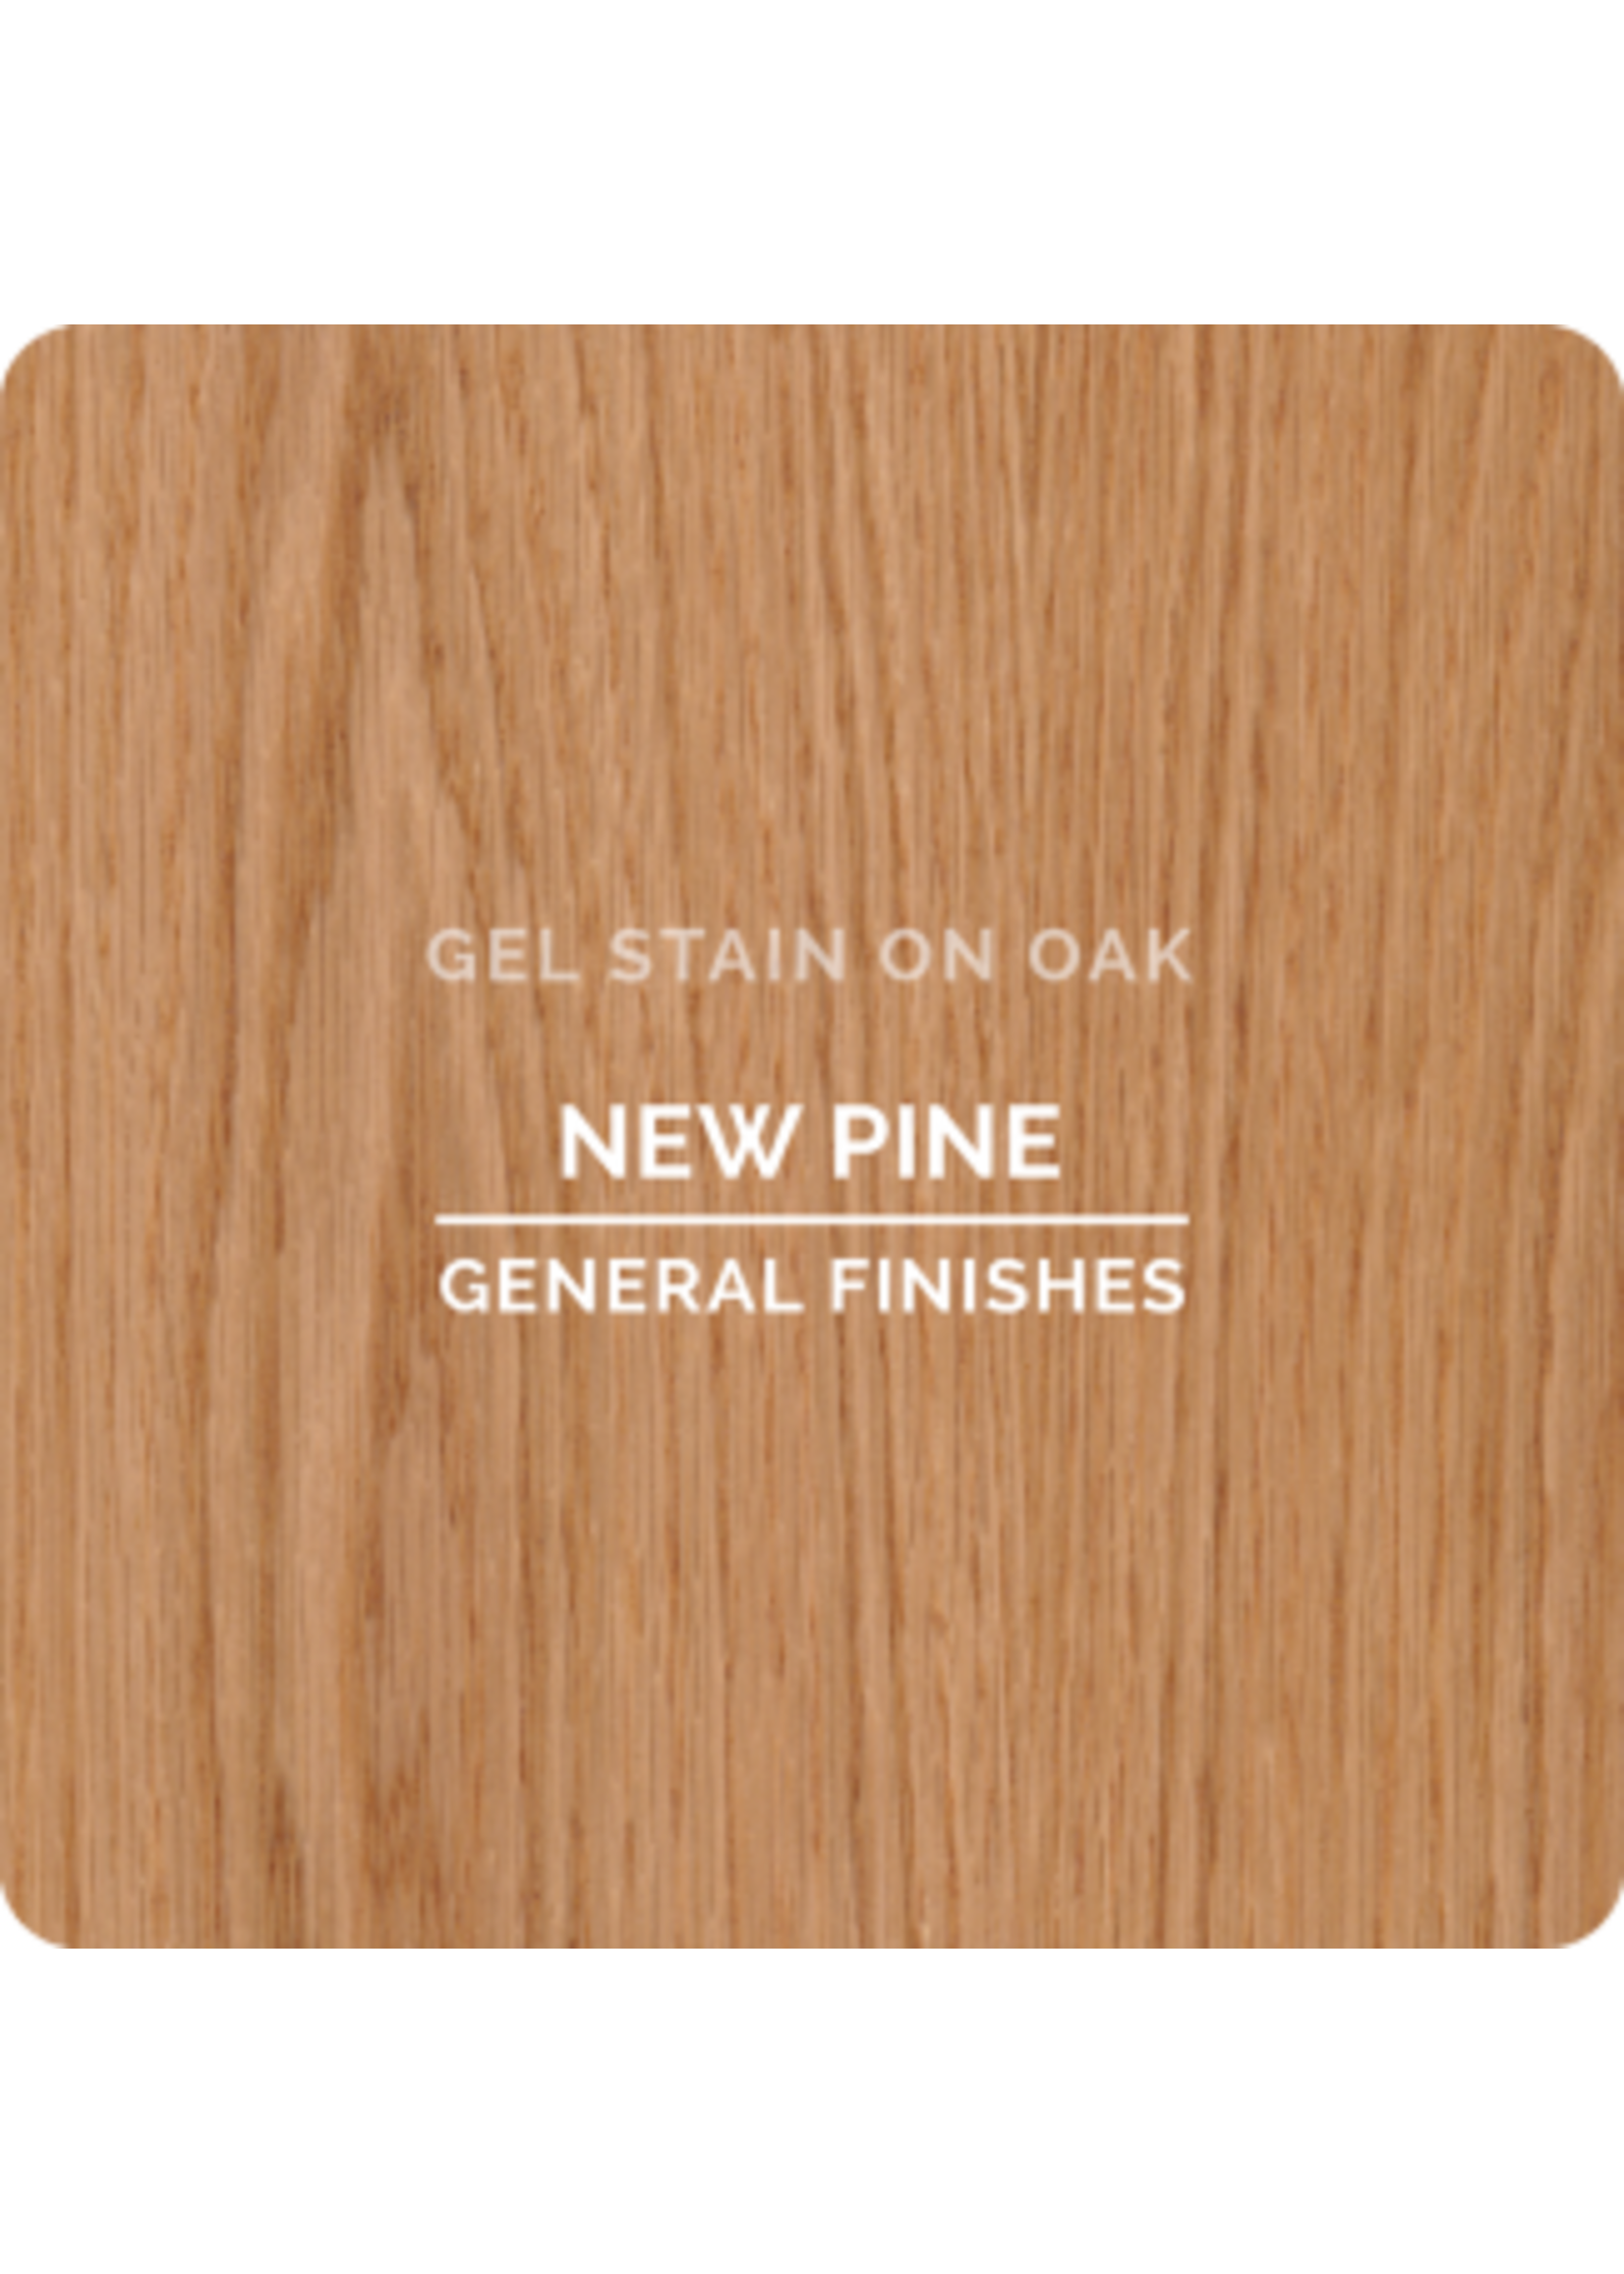 General Finishes New Pine General Finishes Gel Stain